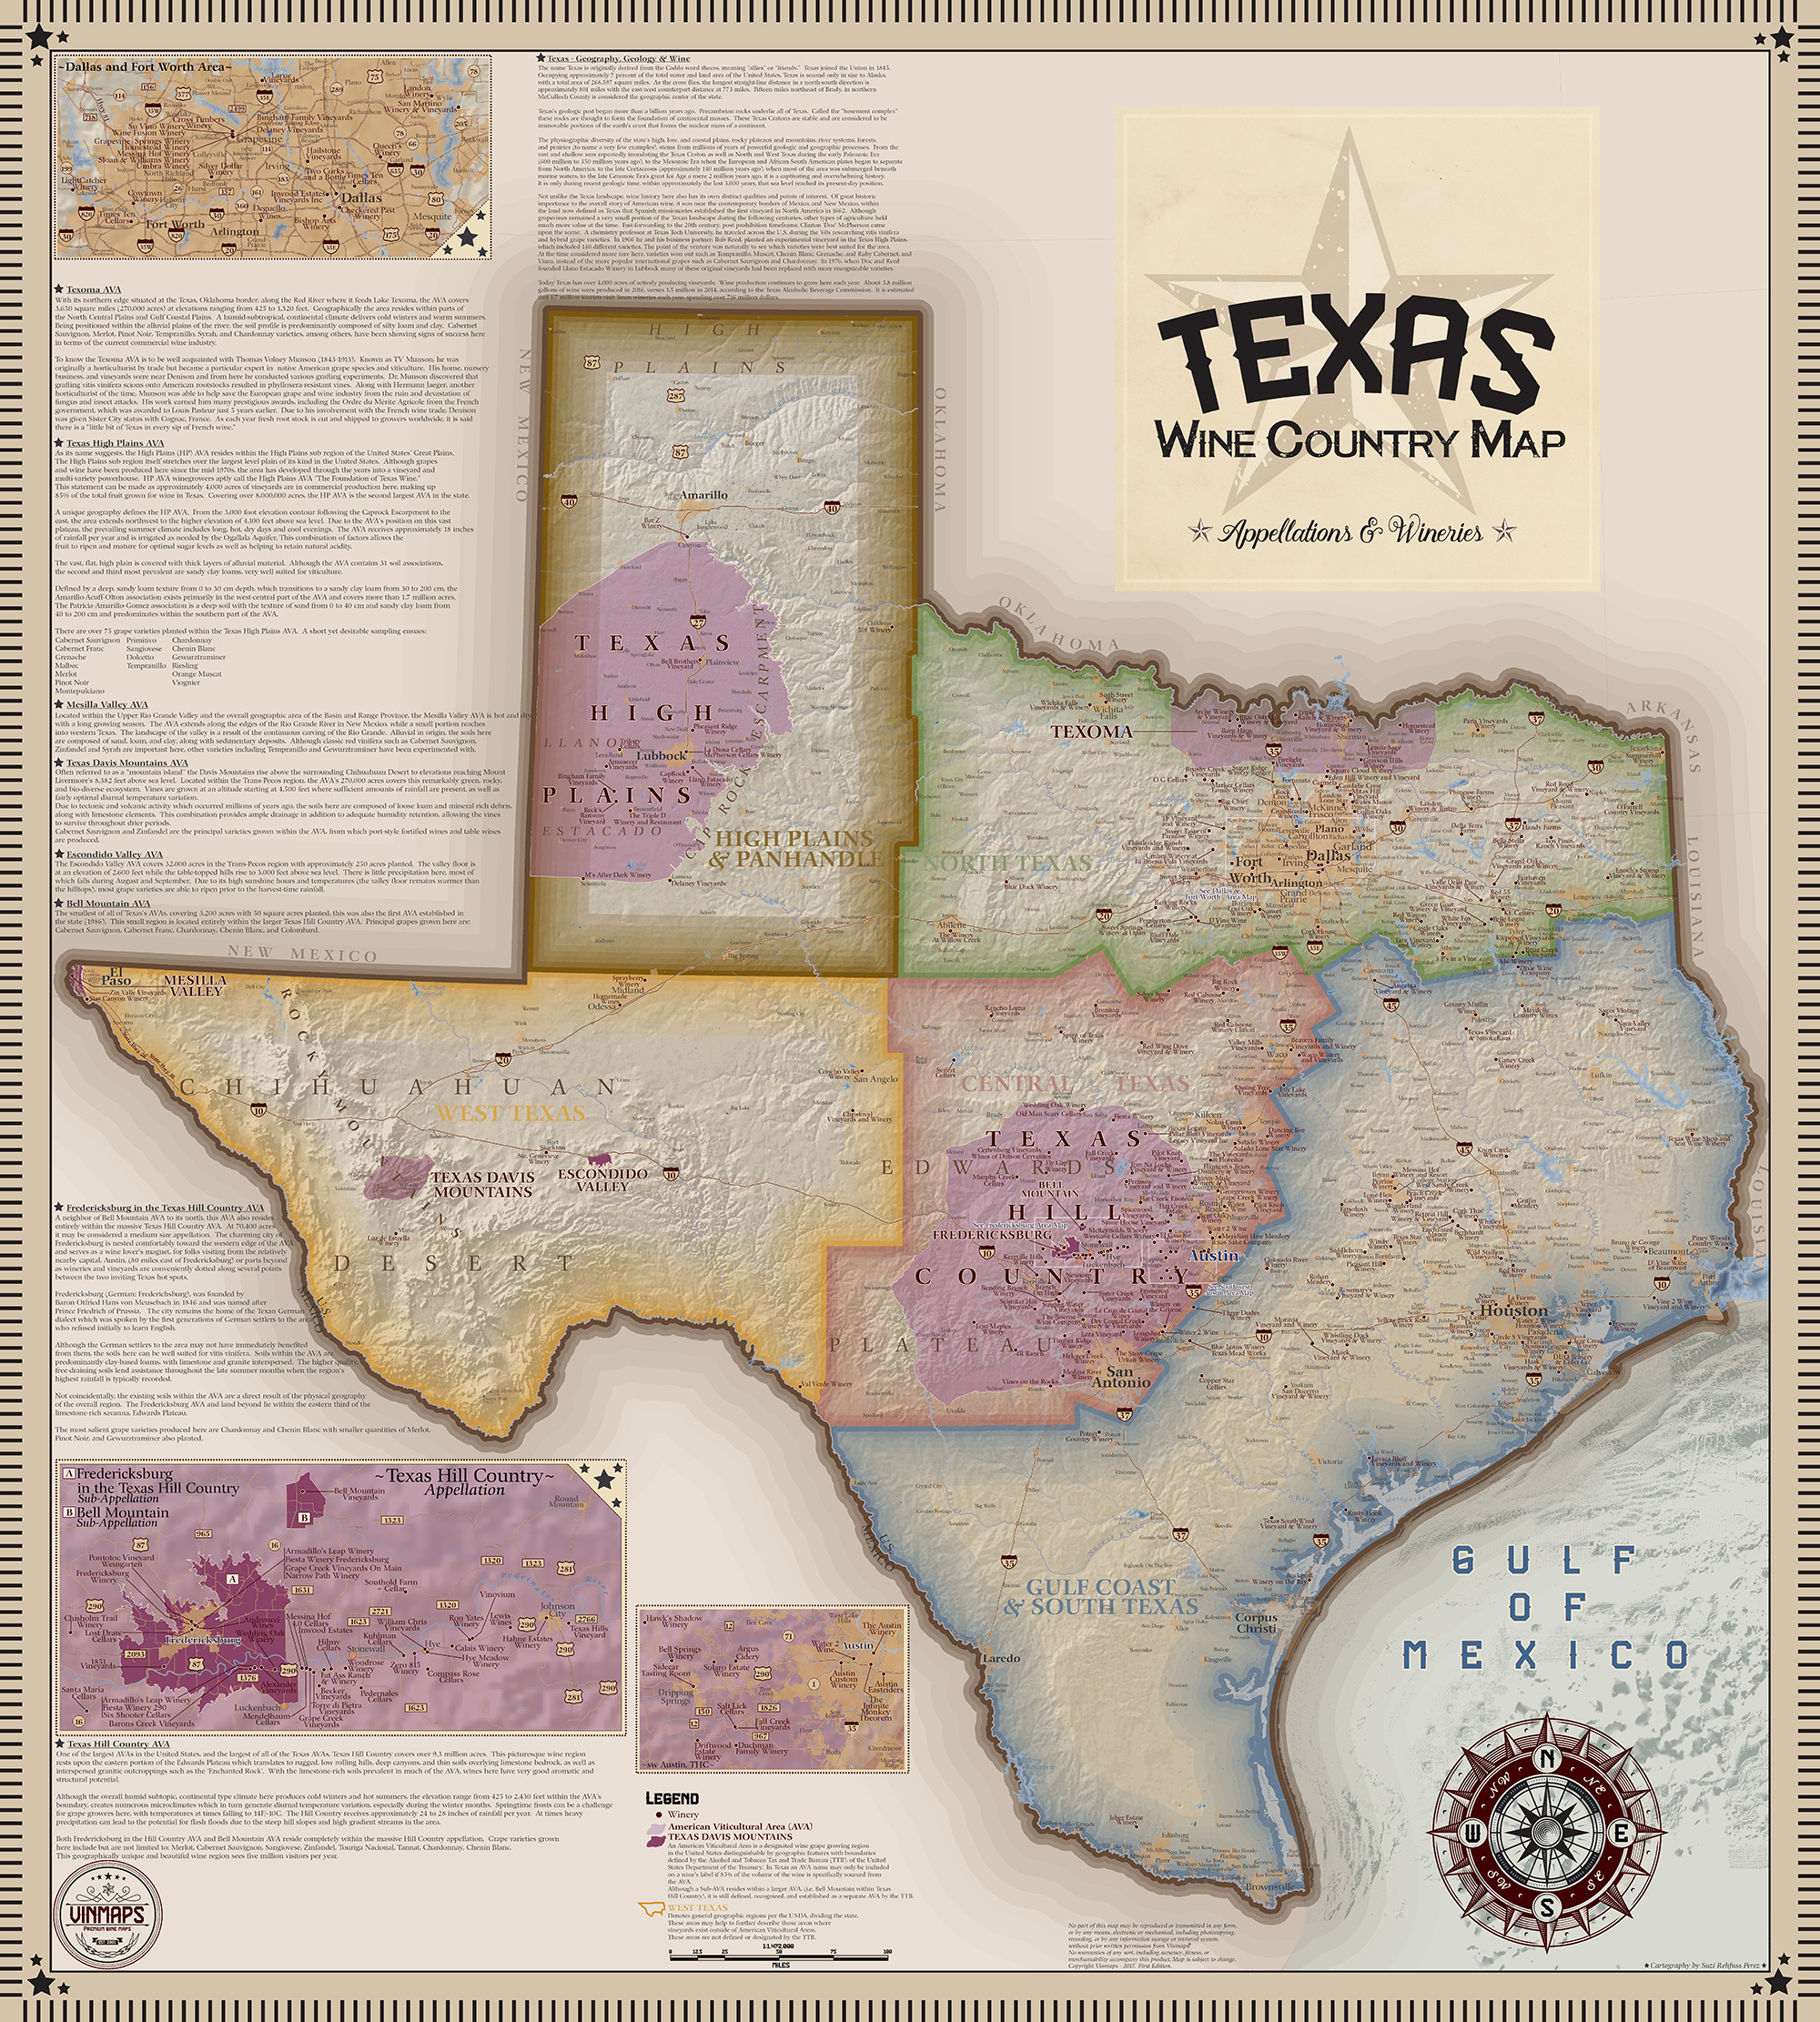 Texas Wine Country Map, Appellations & Wineries - Vinmaps® - Fredericksburg Texas Winery Map